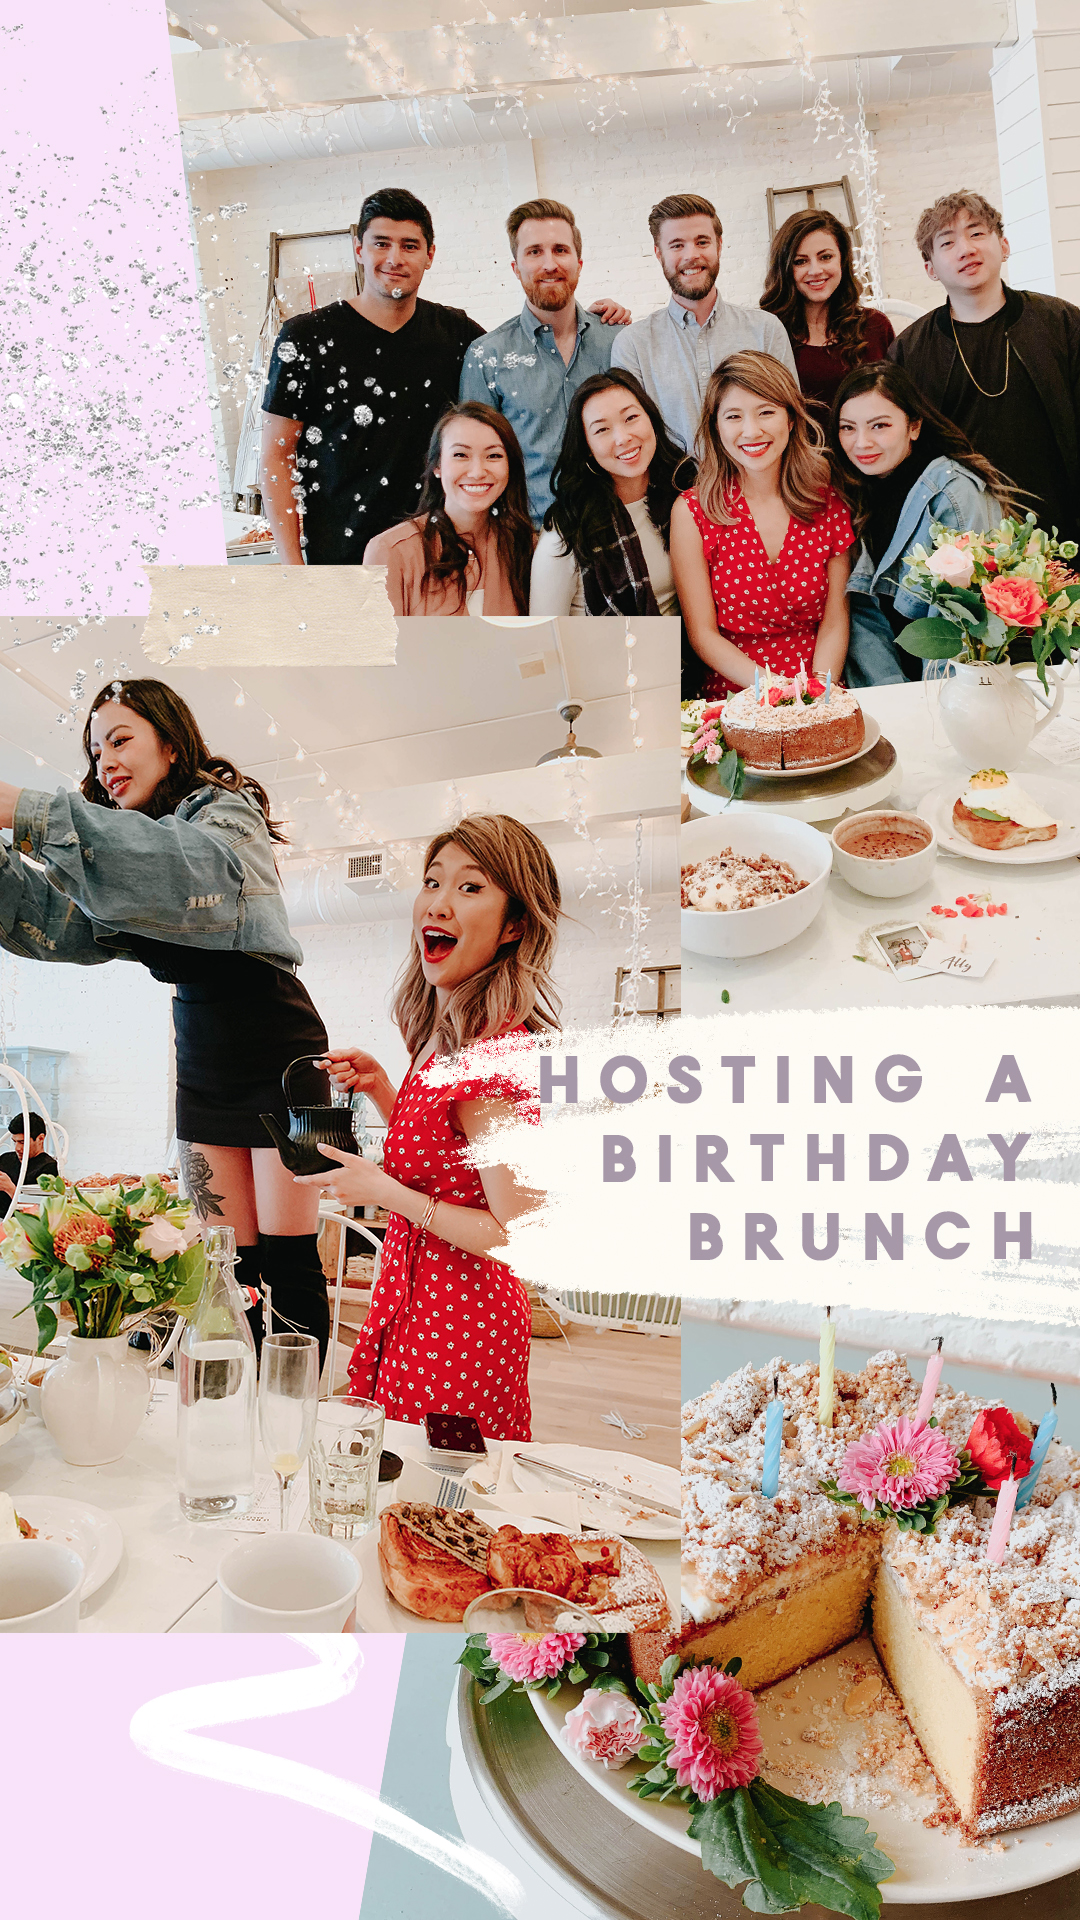 Birthday-Brunch-San-Francisco-Blog-Fashionbyally21.jpg